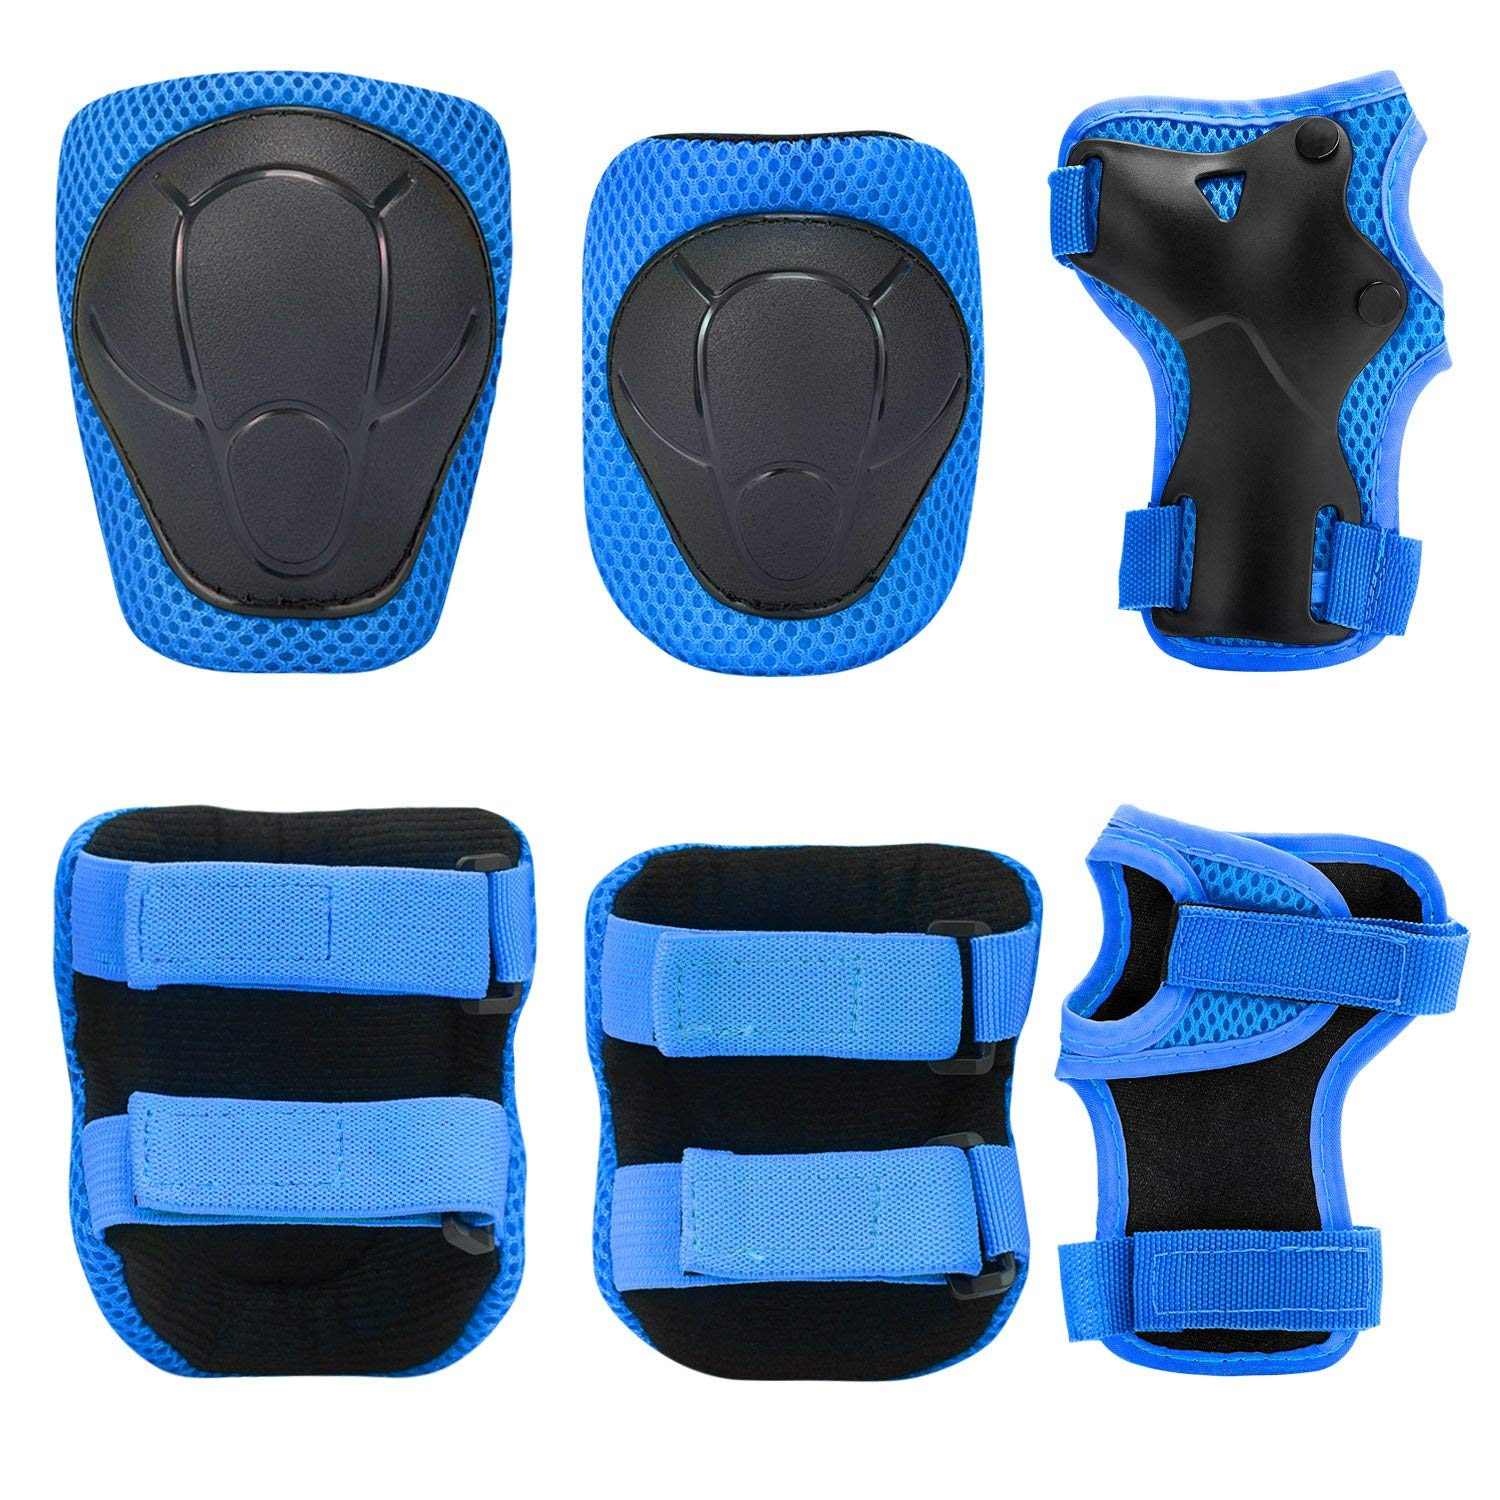 Dostar Kids Protective Gear Sports Protective Safety Pad Wrist Guards Knee Pads Elbow Pads 3 in 1 Protective Gear Appropriate for Skateboard Roller Blade Skiing and Other Outdoor Sports